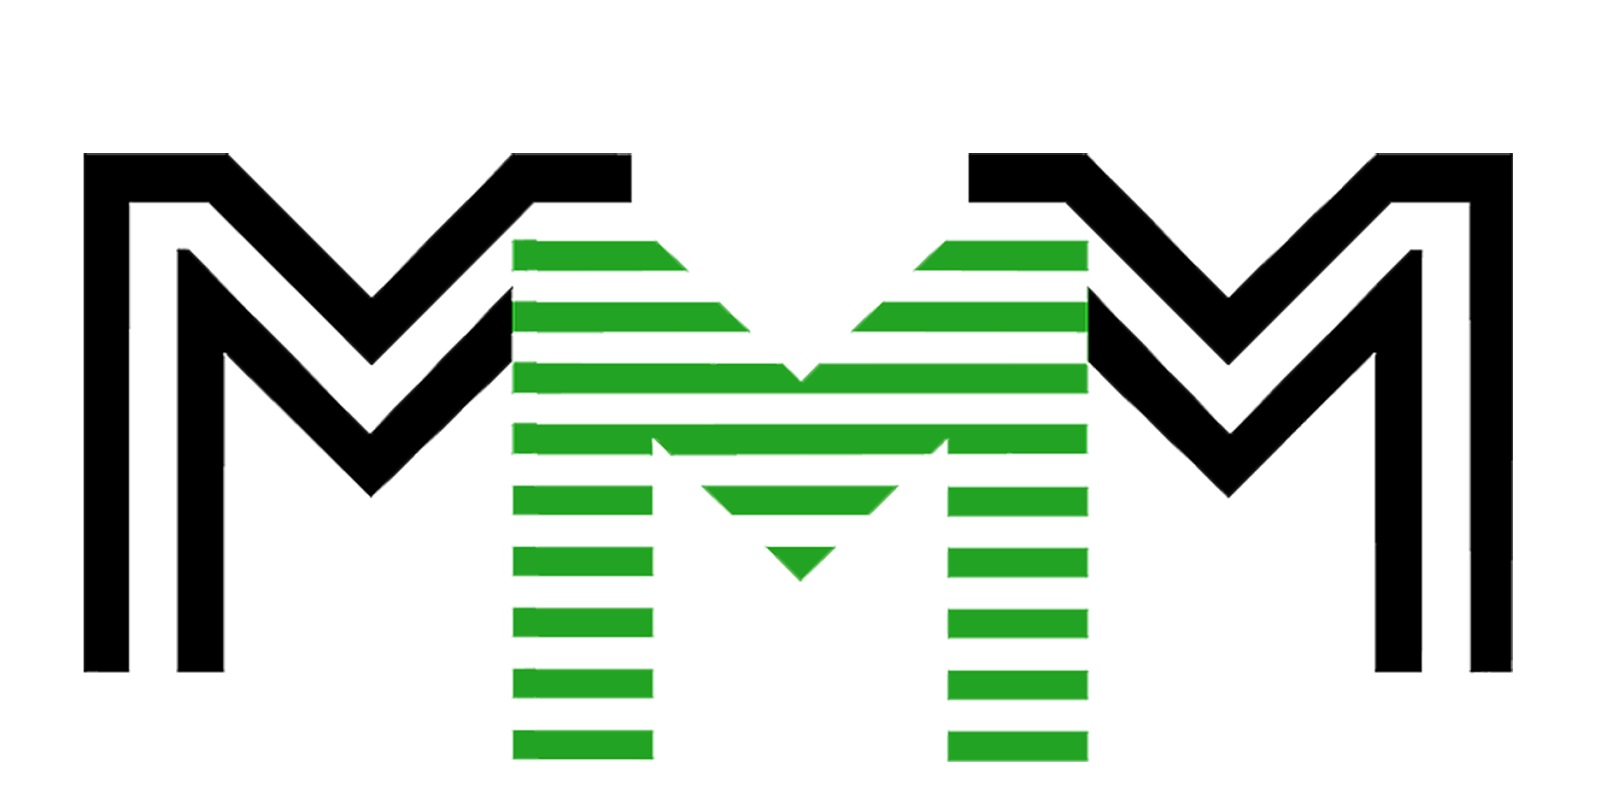 MMM Crossover: It appears MMM isn't ready to say goodbye to Nigeria